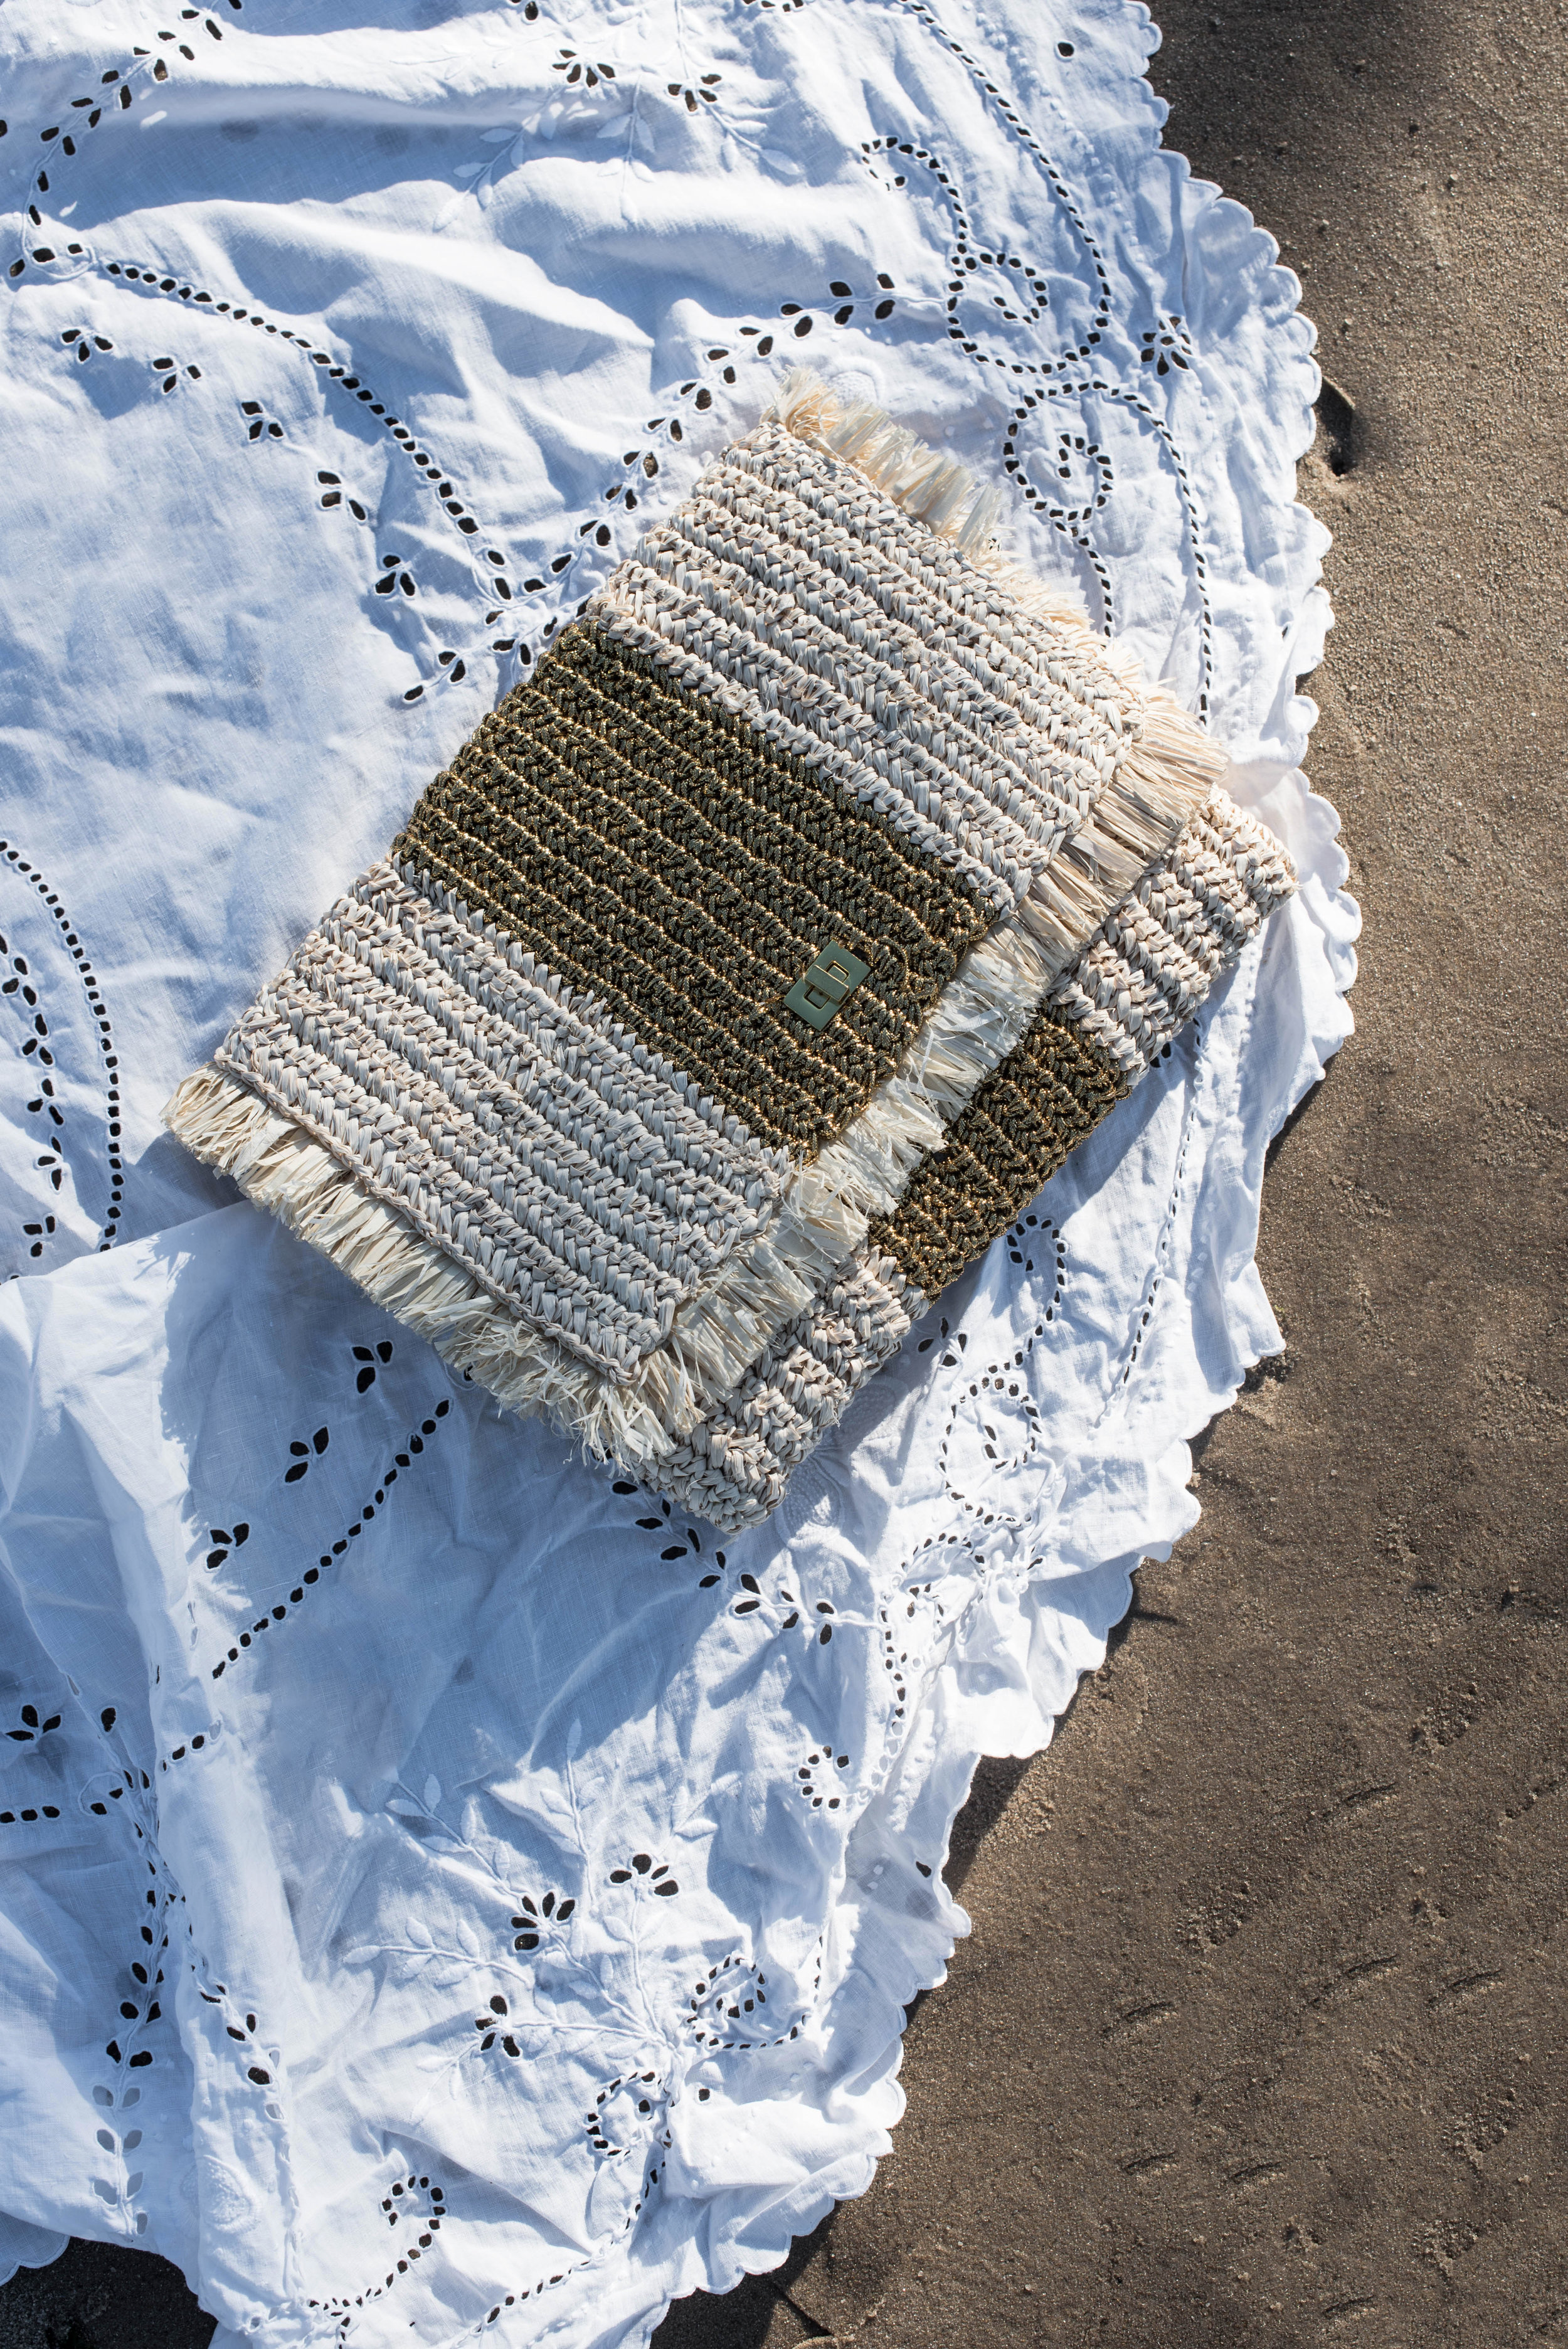 ROSE & IVY Journal Summer Bags for City or Beach with Kayu